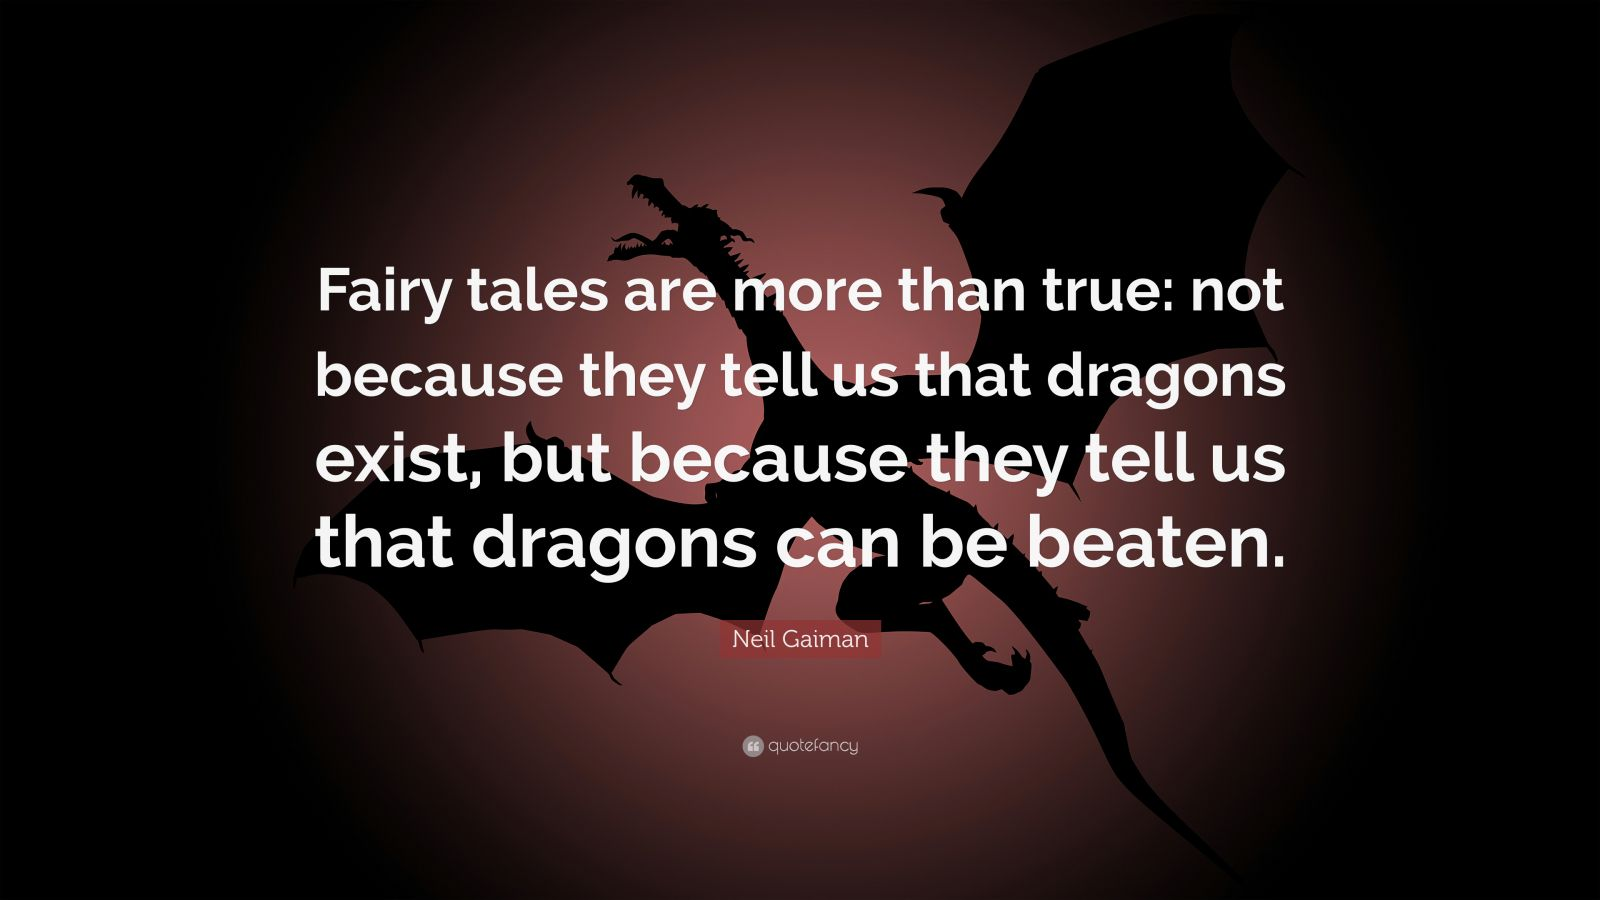 """Neil Gaiman Quote: """"Fairy tales are more than true: not because they tell us that dragons exist, but because they tell us that dragons can be beaten."""""""